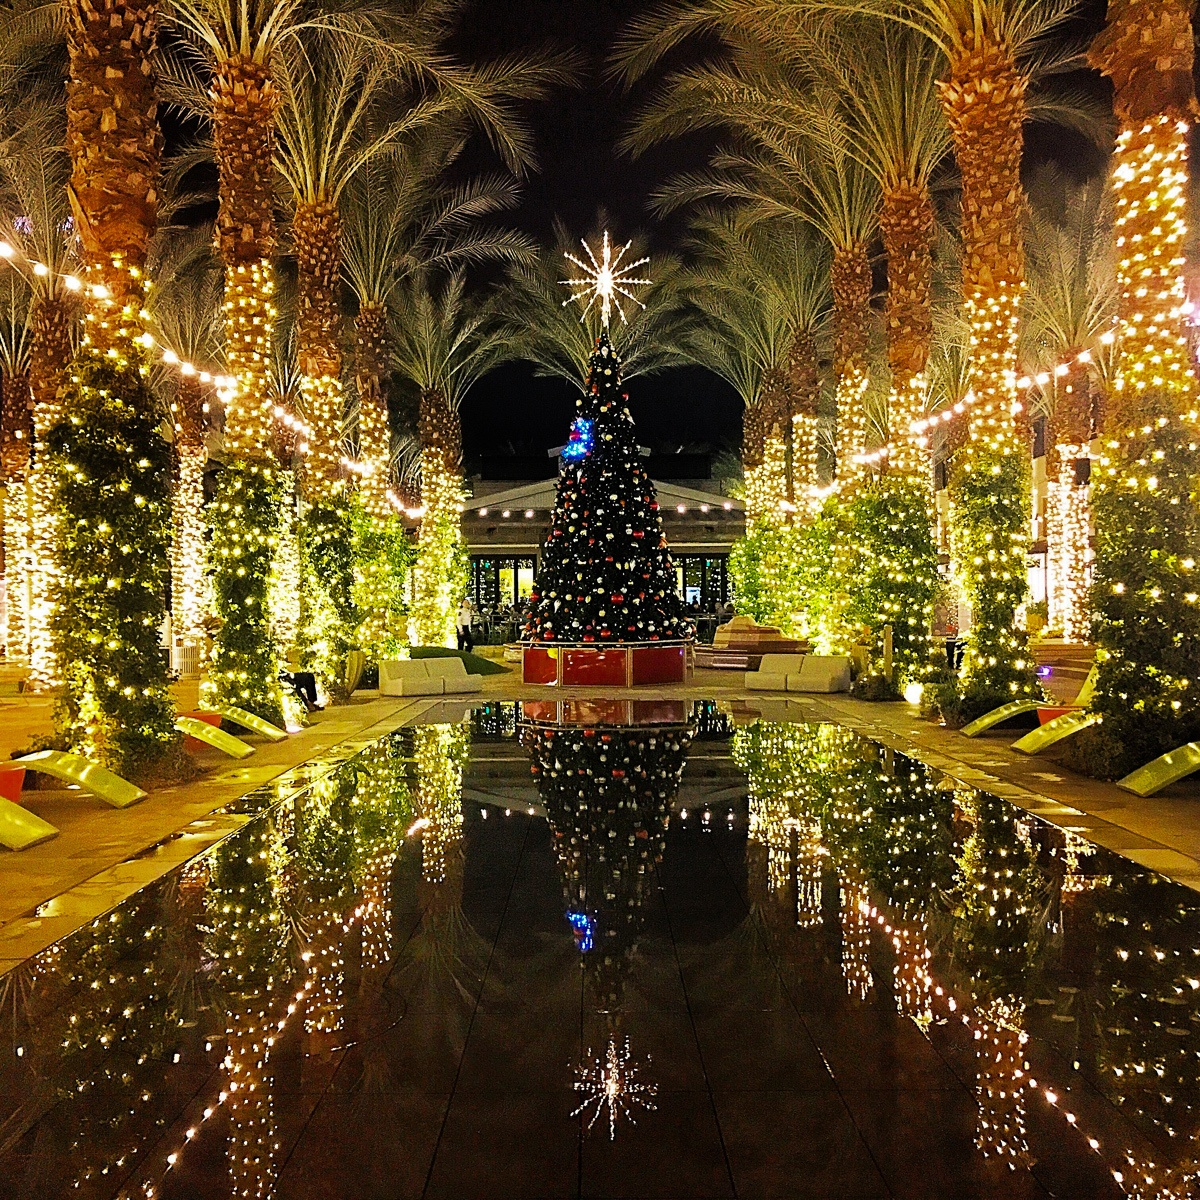 Christmas tree and holiday lights at Scottsdale Quarter